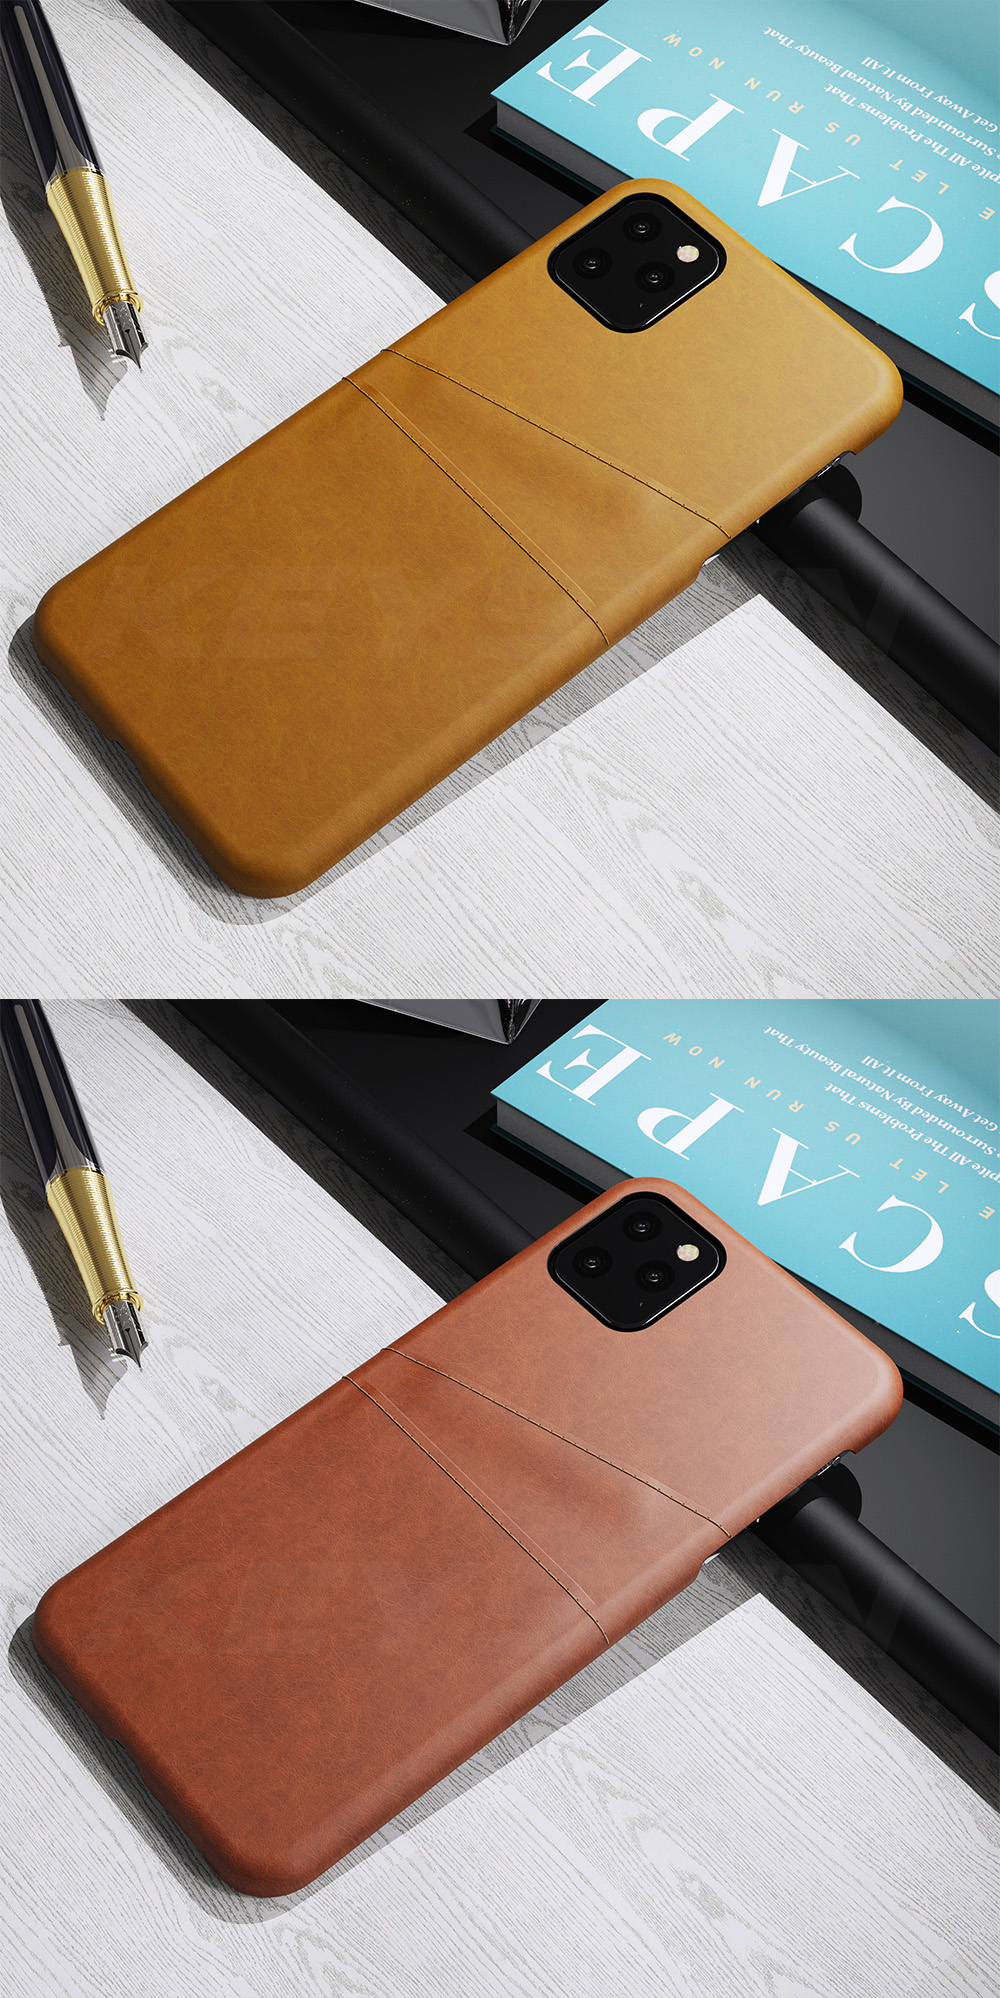 KEYSION Leather Card Pocket Cases for iPhone 11/11 Pro/11 Pro Max 14